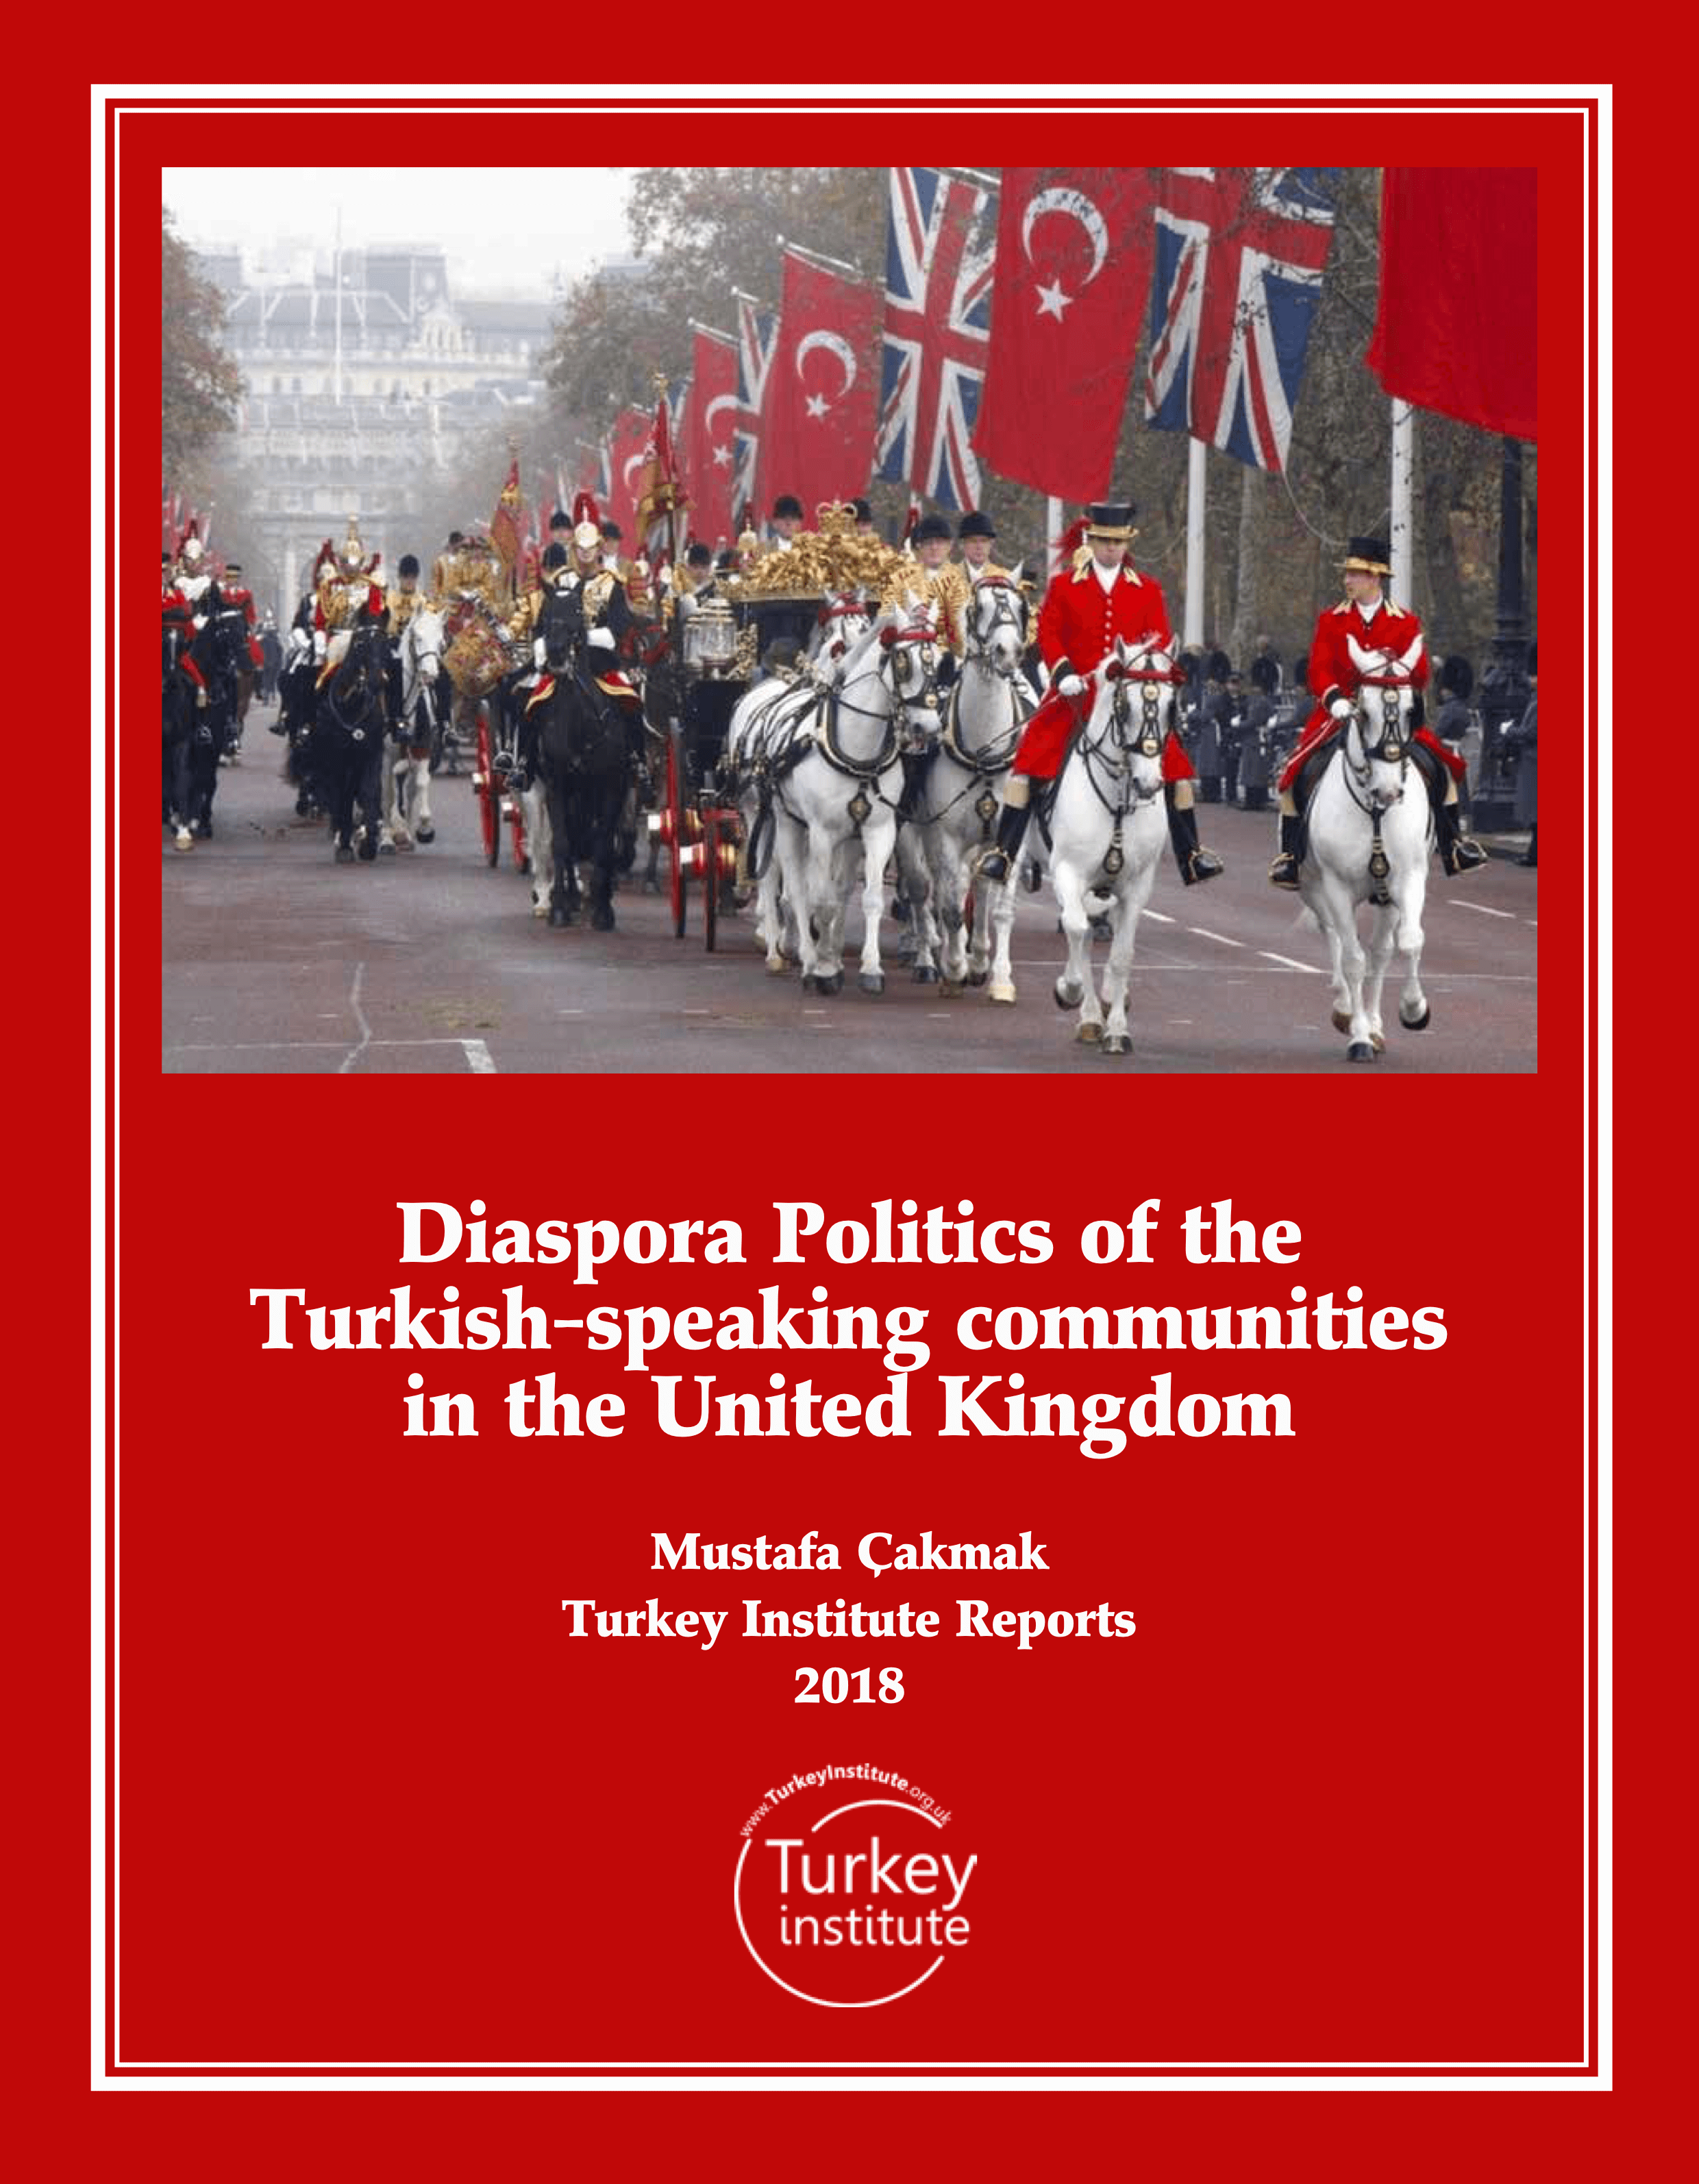 Diaspora Politics of the Turkish-speaking Communities in the United Kingdom